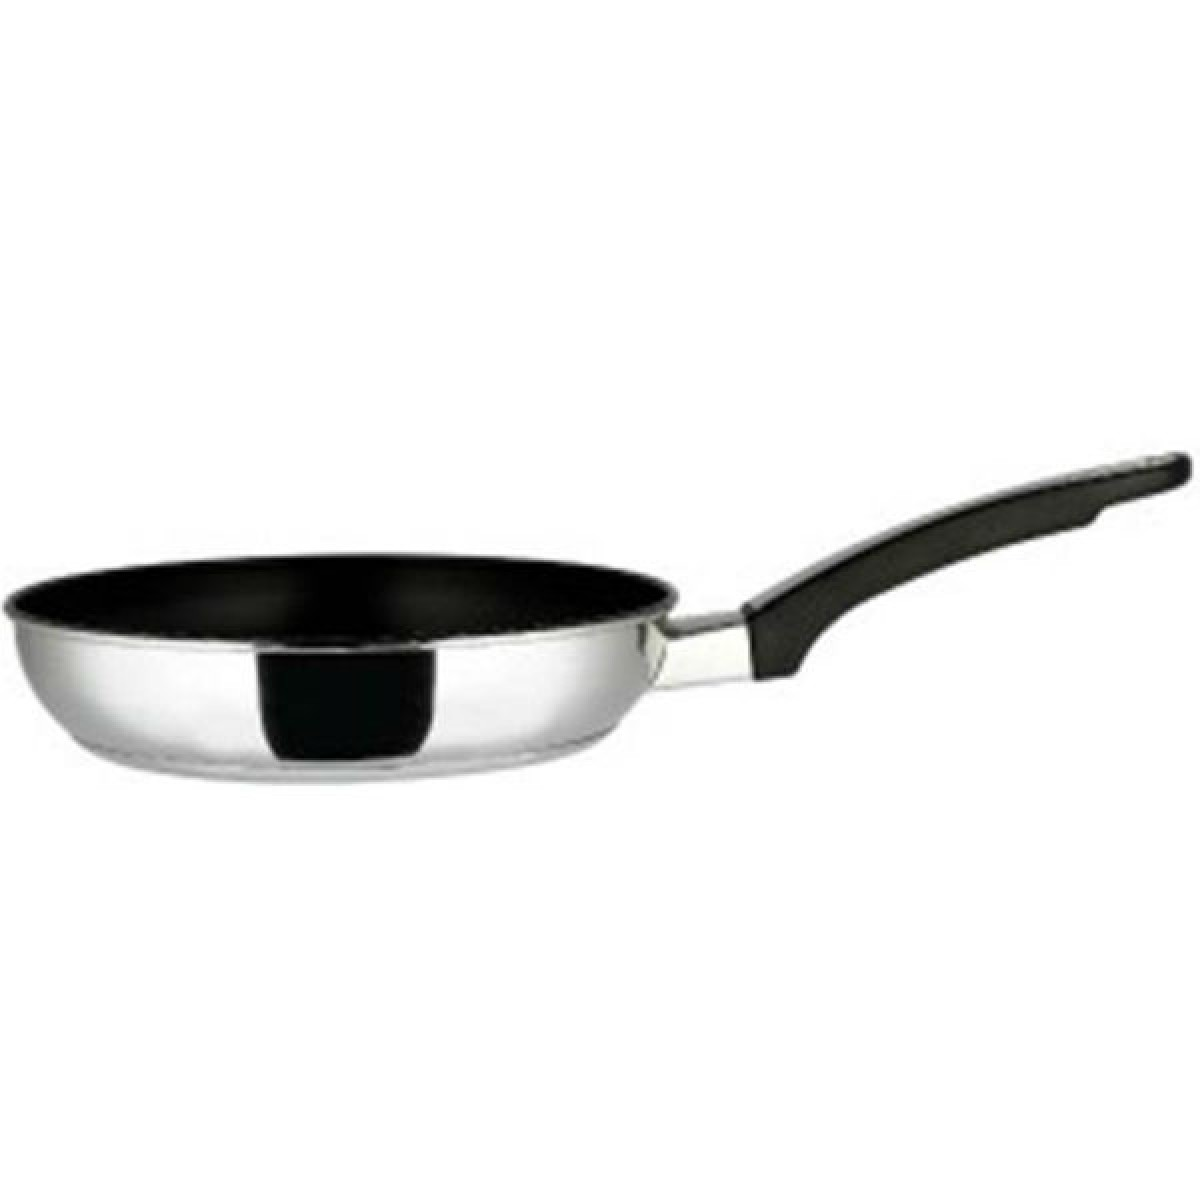 Stainless Steel Frying Pan Prestige Stainless Steel Non Stick Frying Pan 28cm